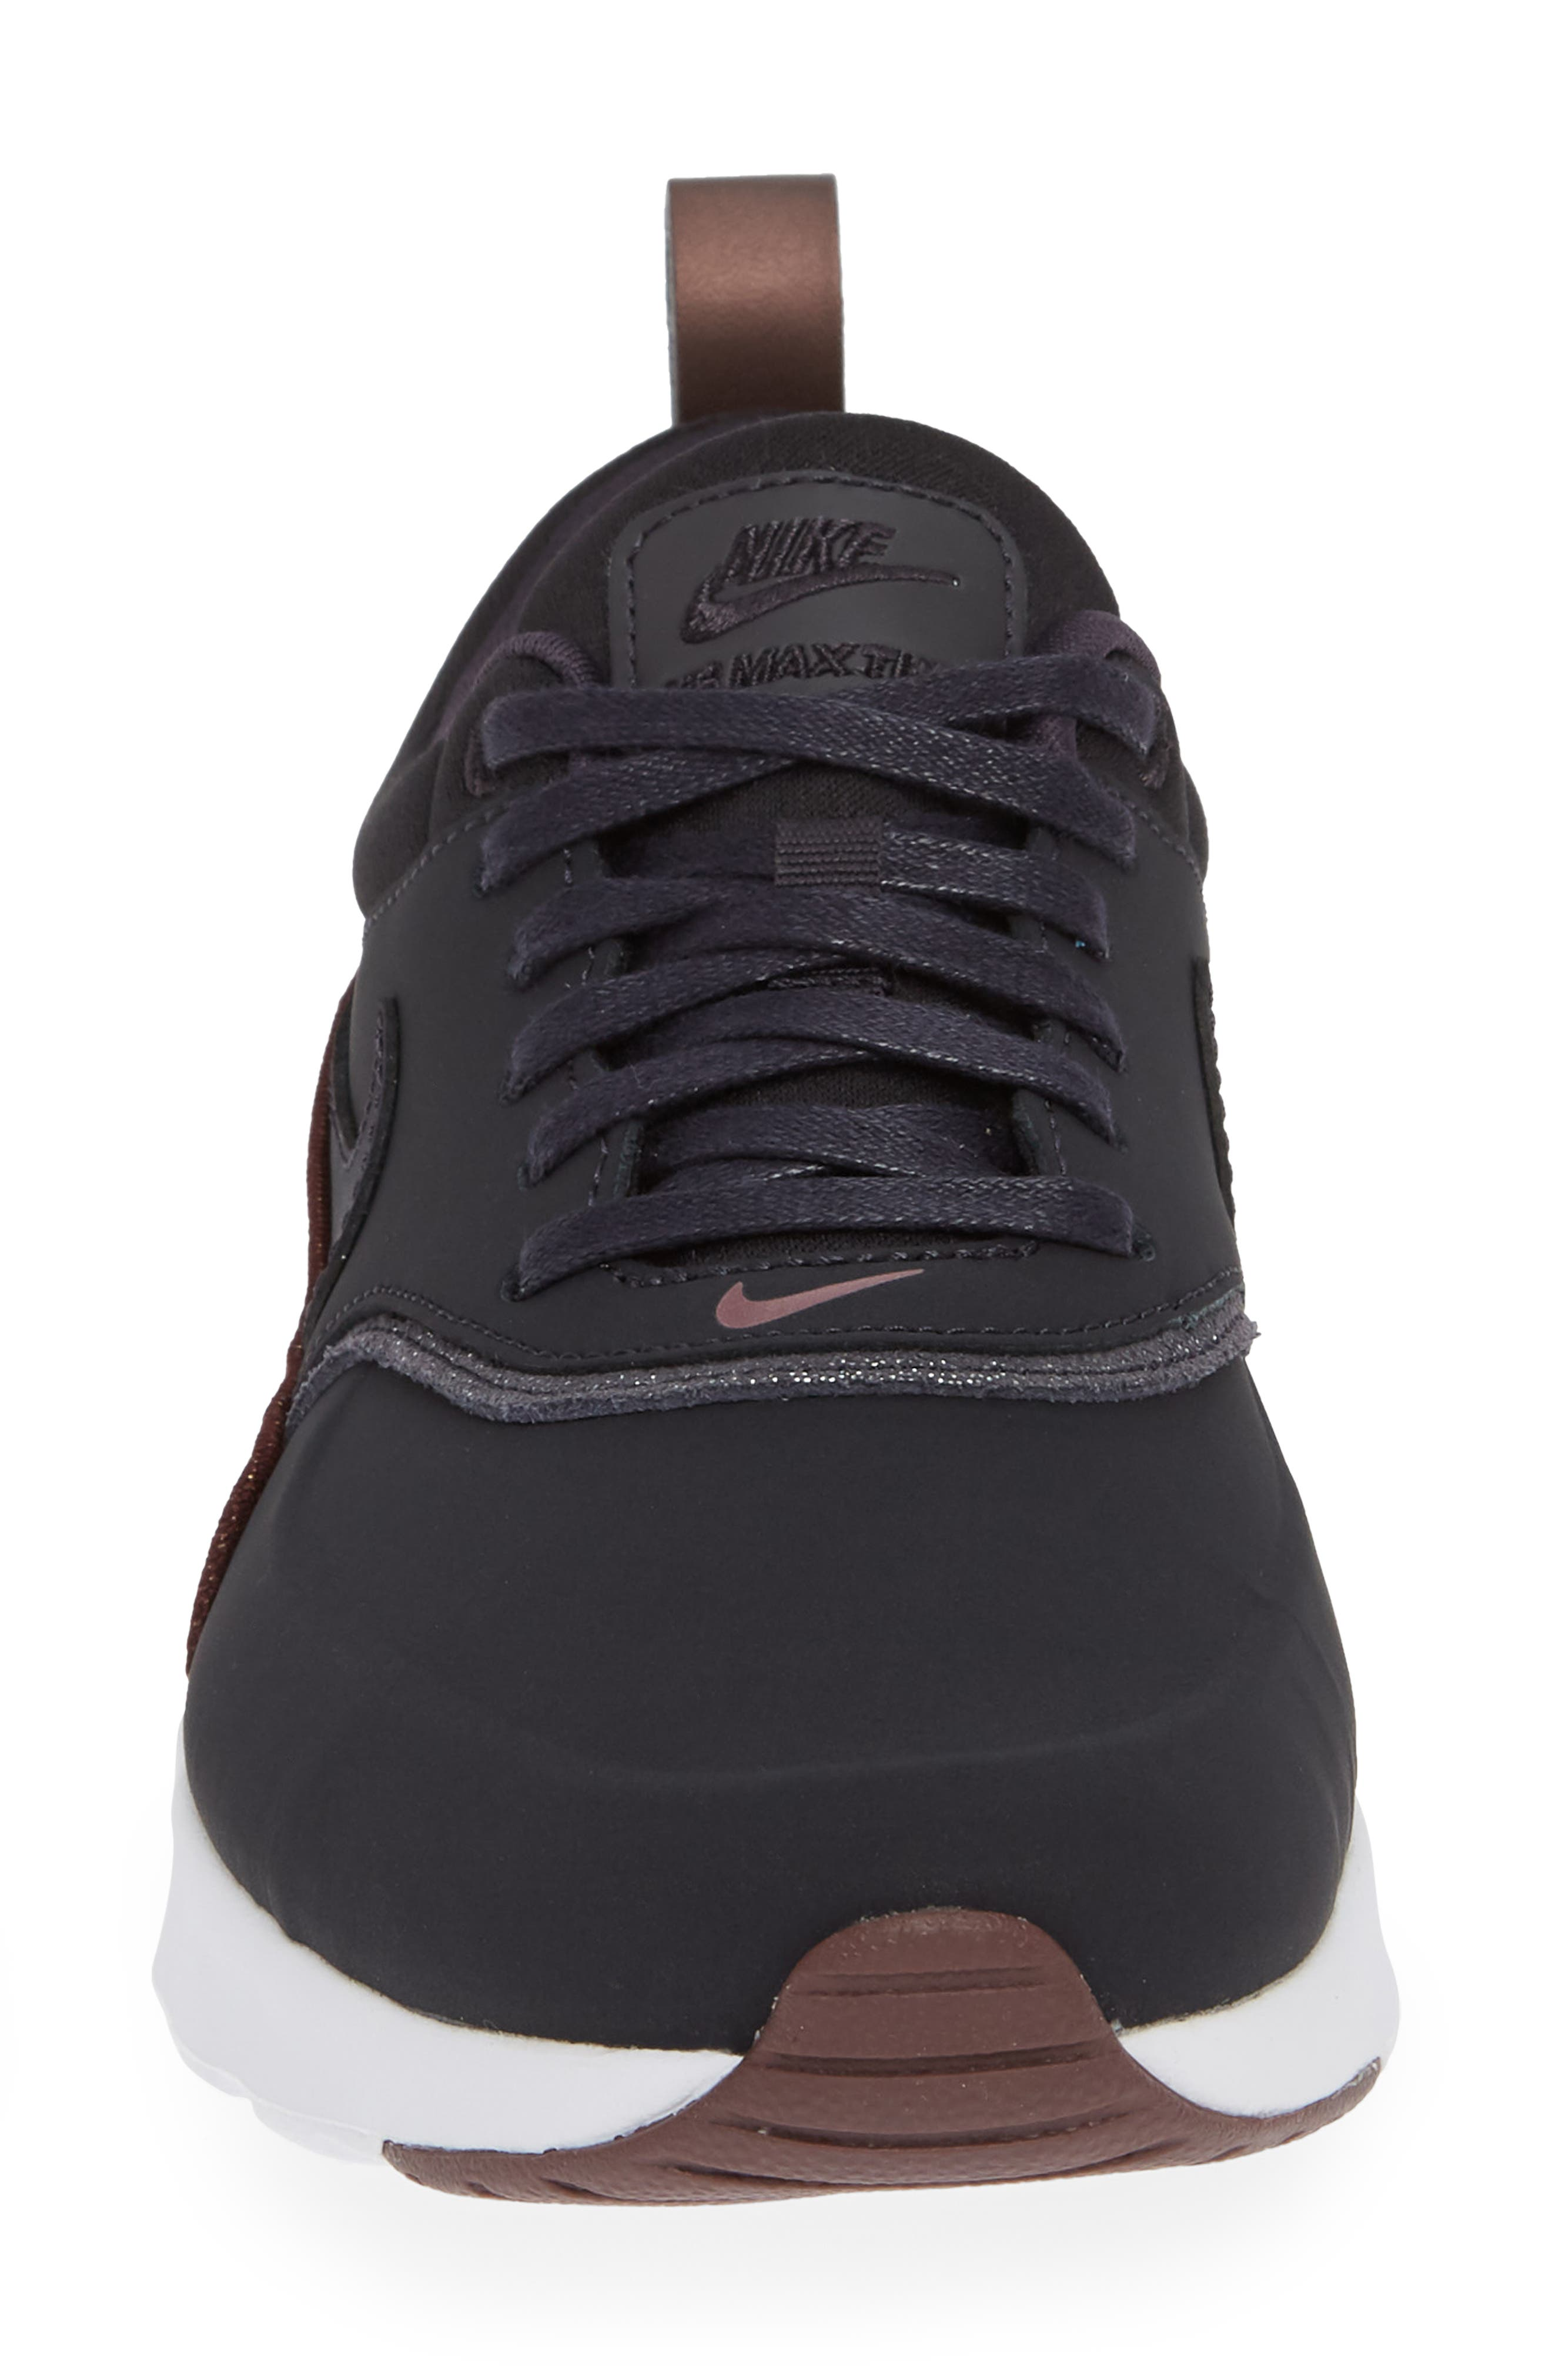 Air Max Thea Sneaker,                             Alternate thumbnail 4, color,                             OIL GREY/ OIL GREY/ MAHOGANY